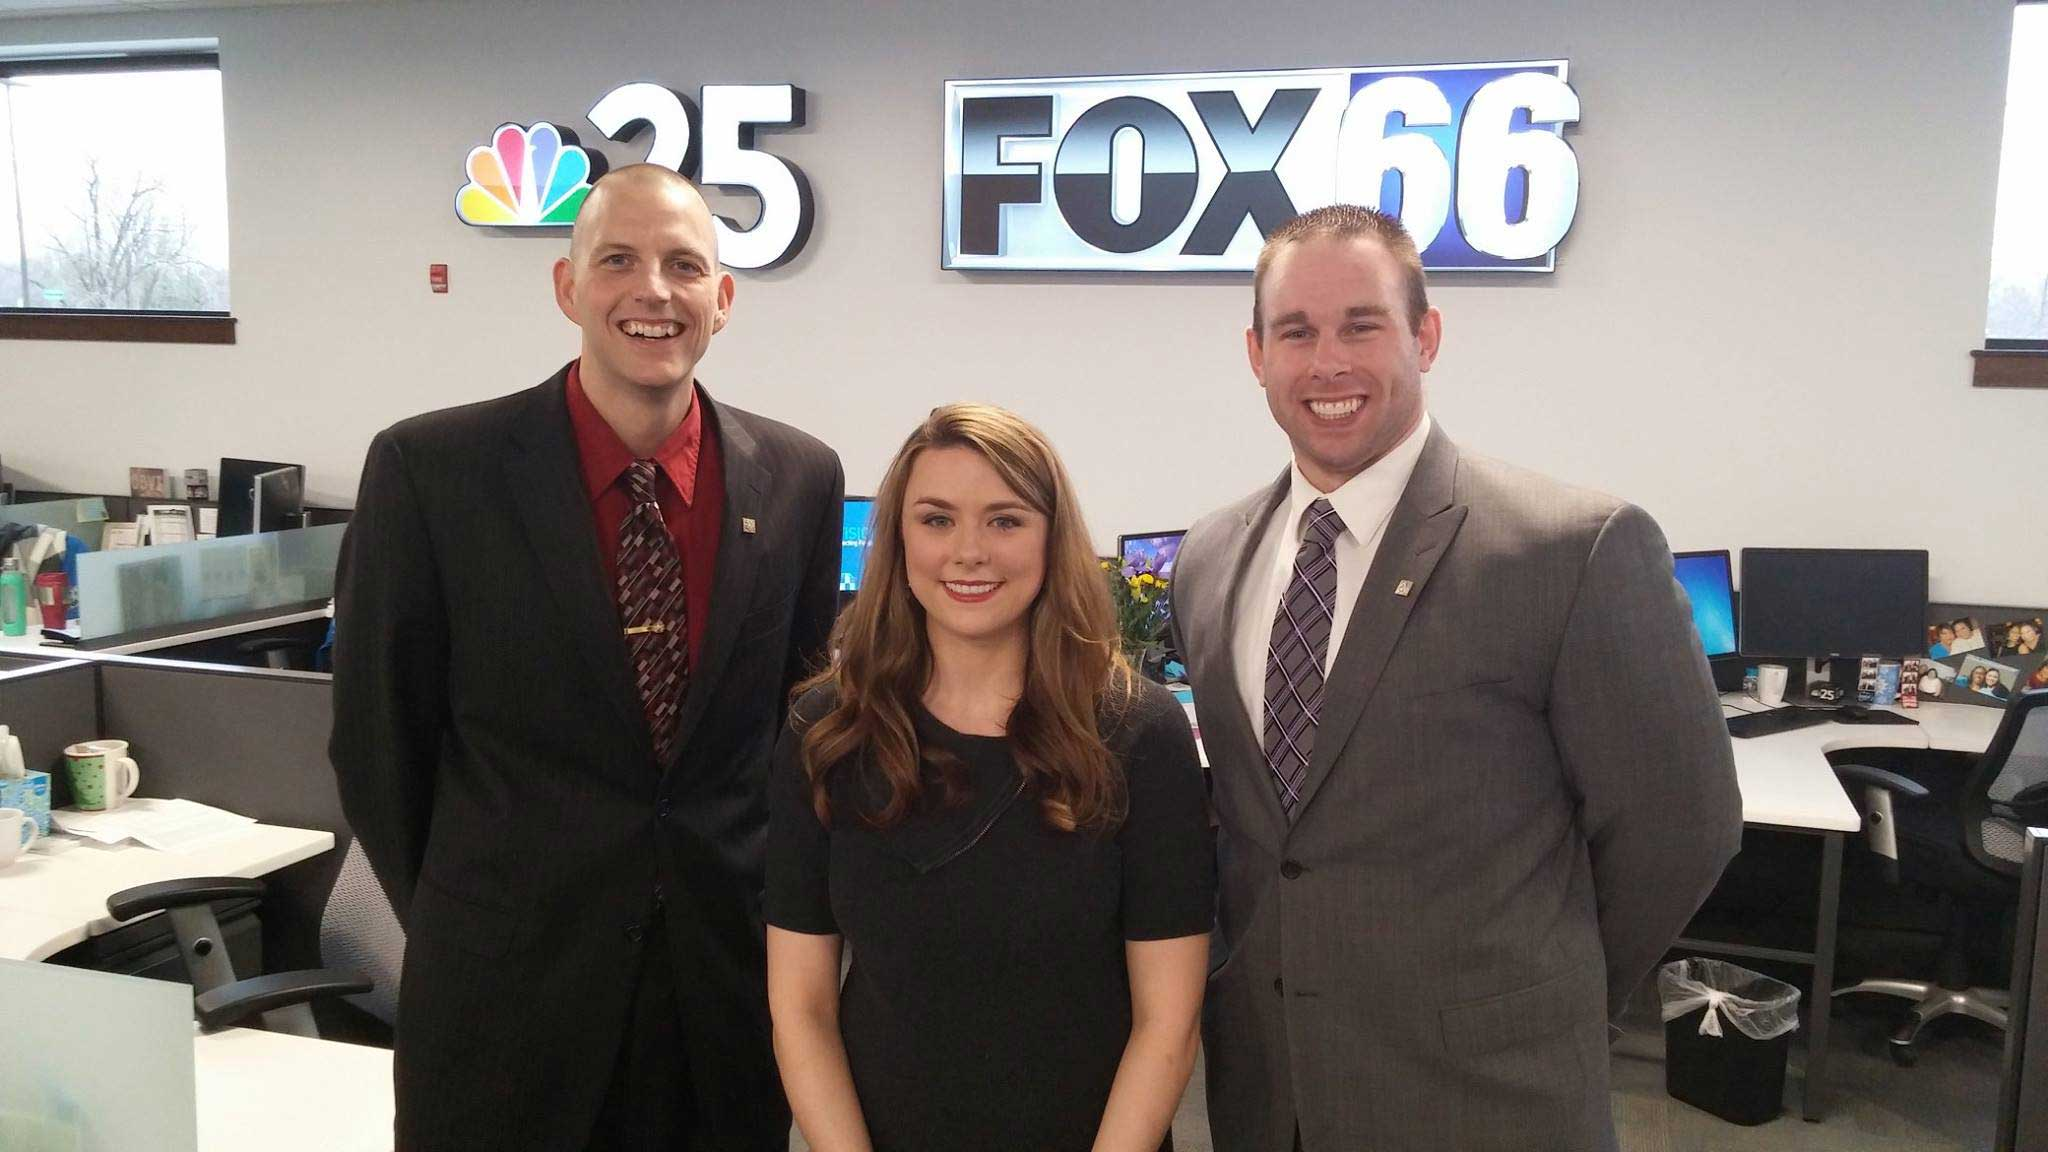 Career Services Director Mike Major, NBC25/Fox 66 reporter Jennifer Profitt, and  Assistant Director Tom Barnikow in newsroom.